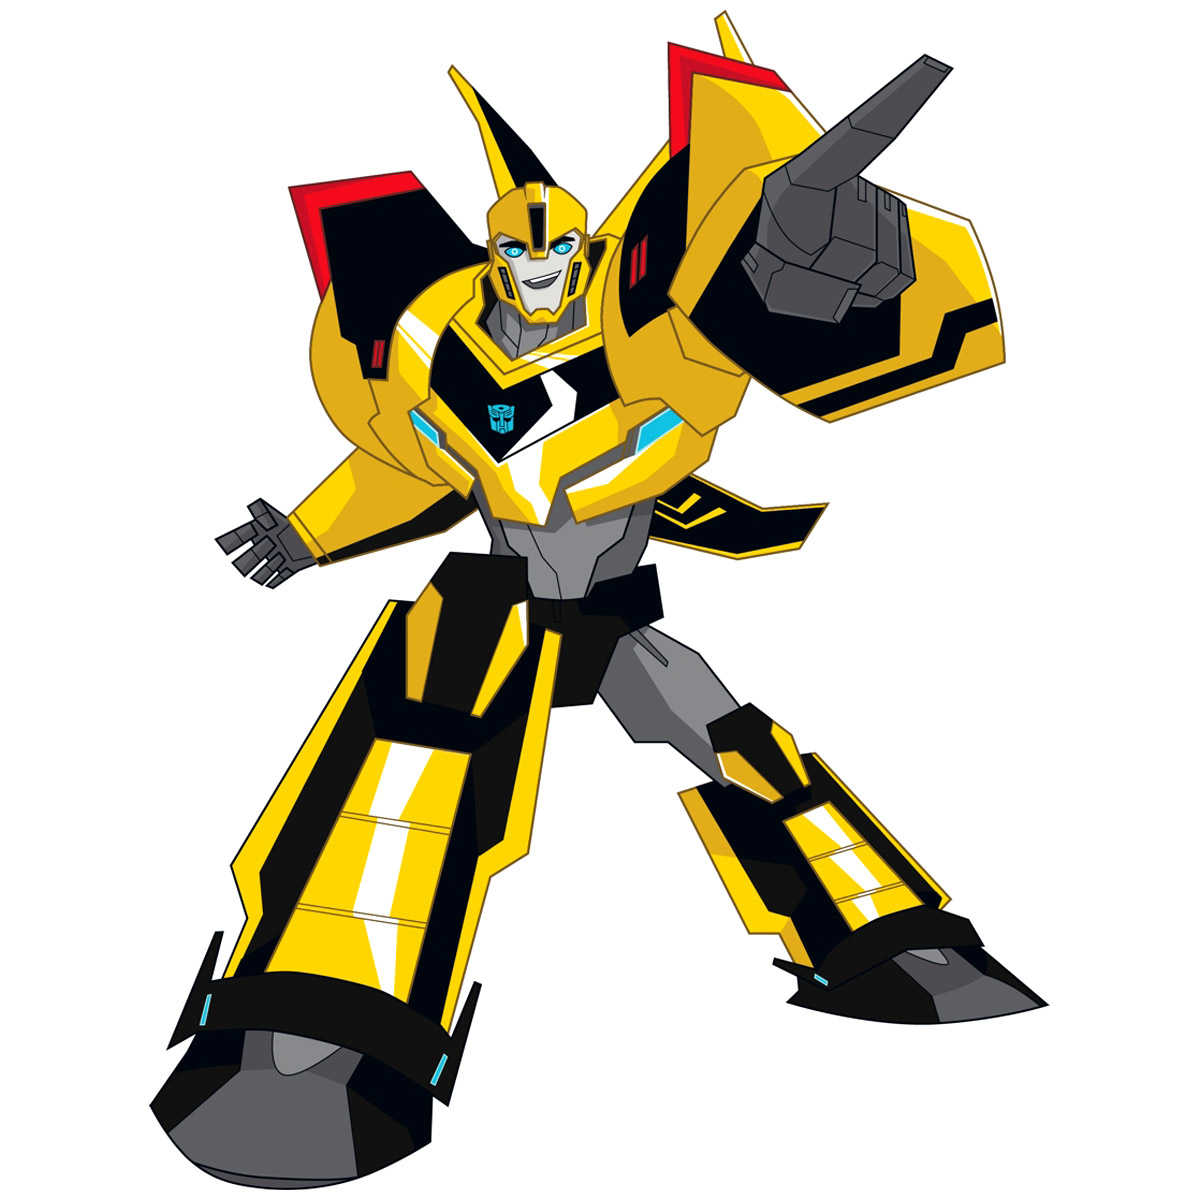 transformers-2015-bumblebee-animated